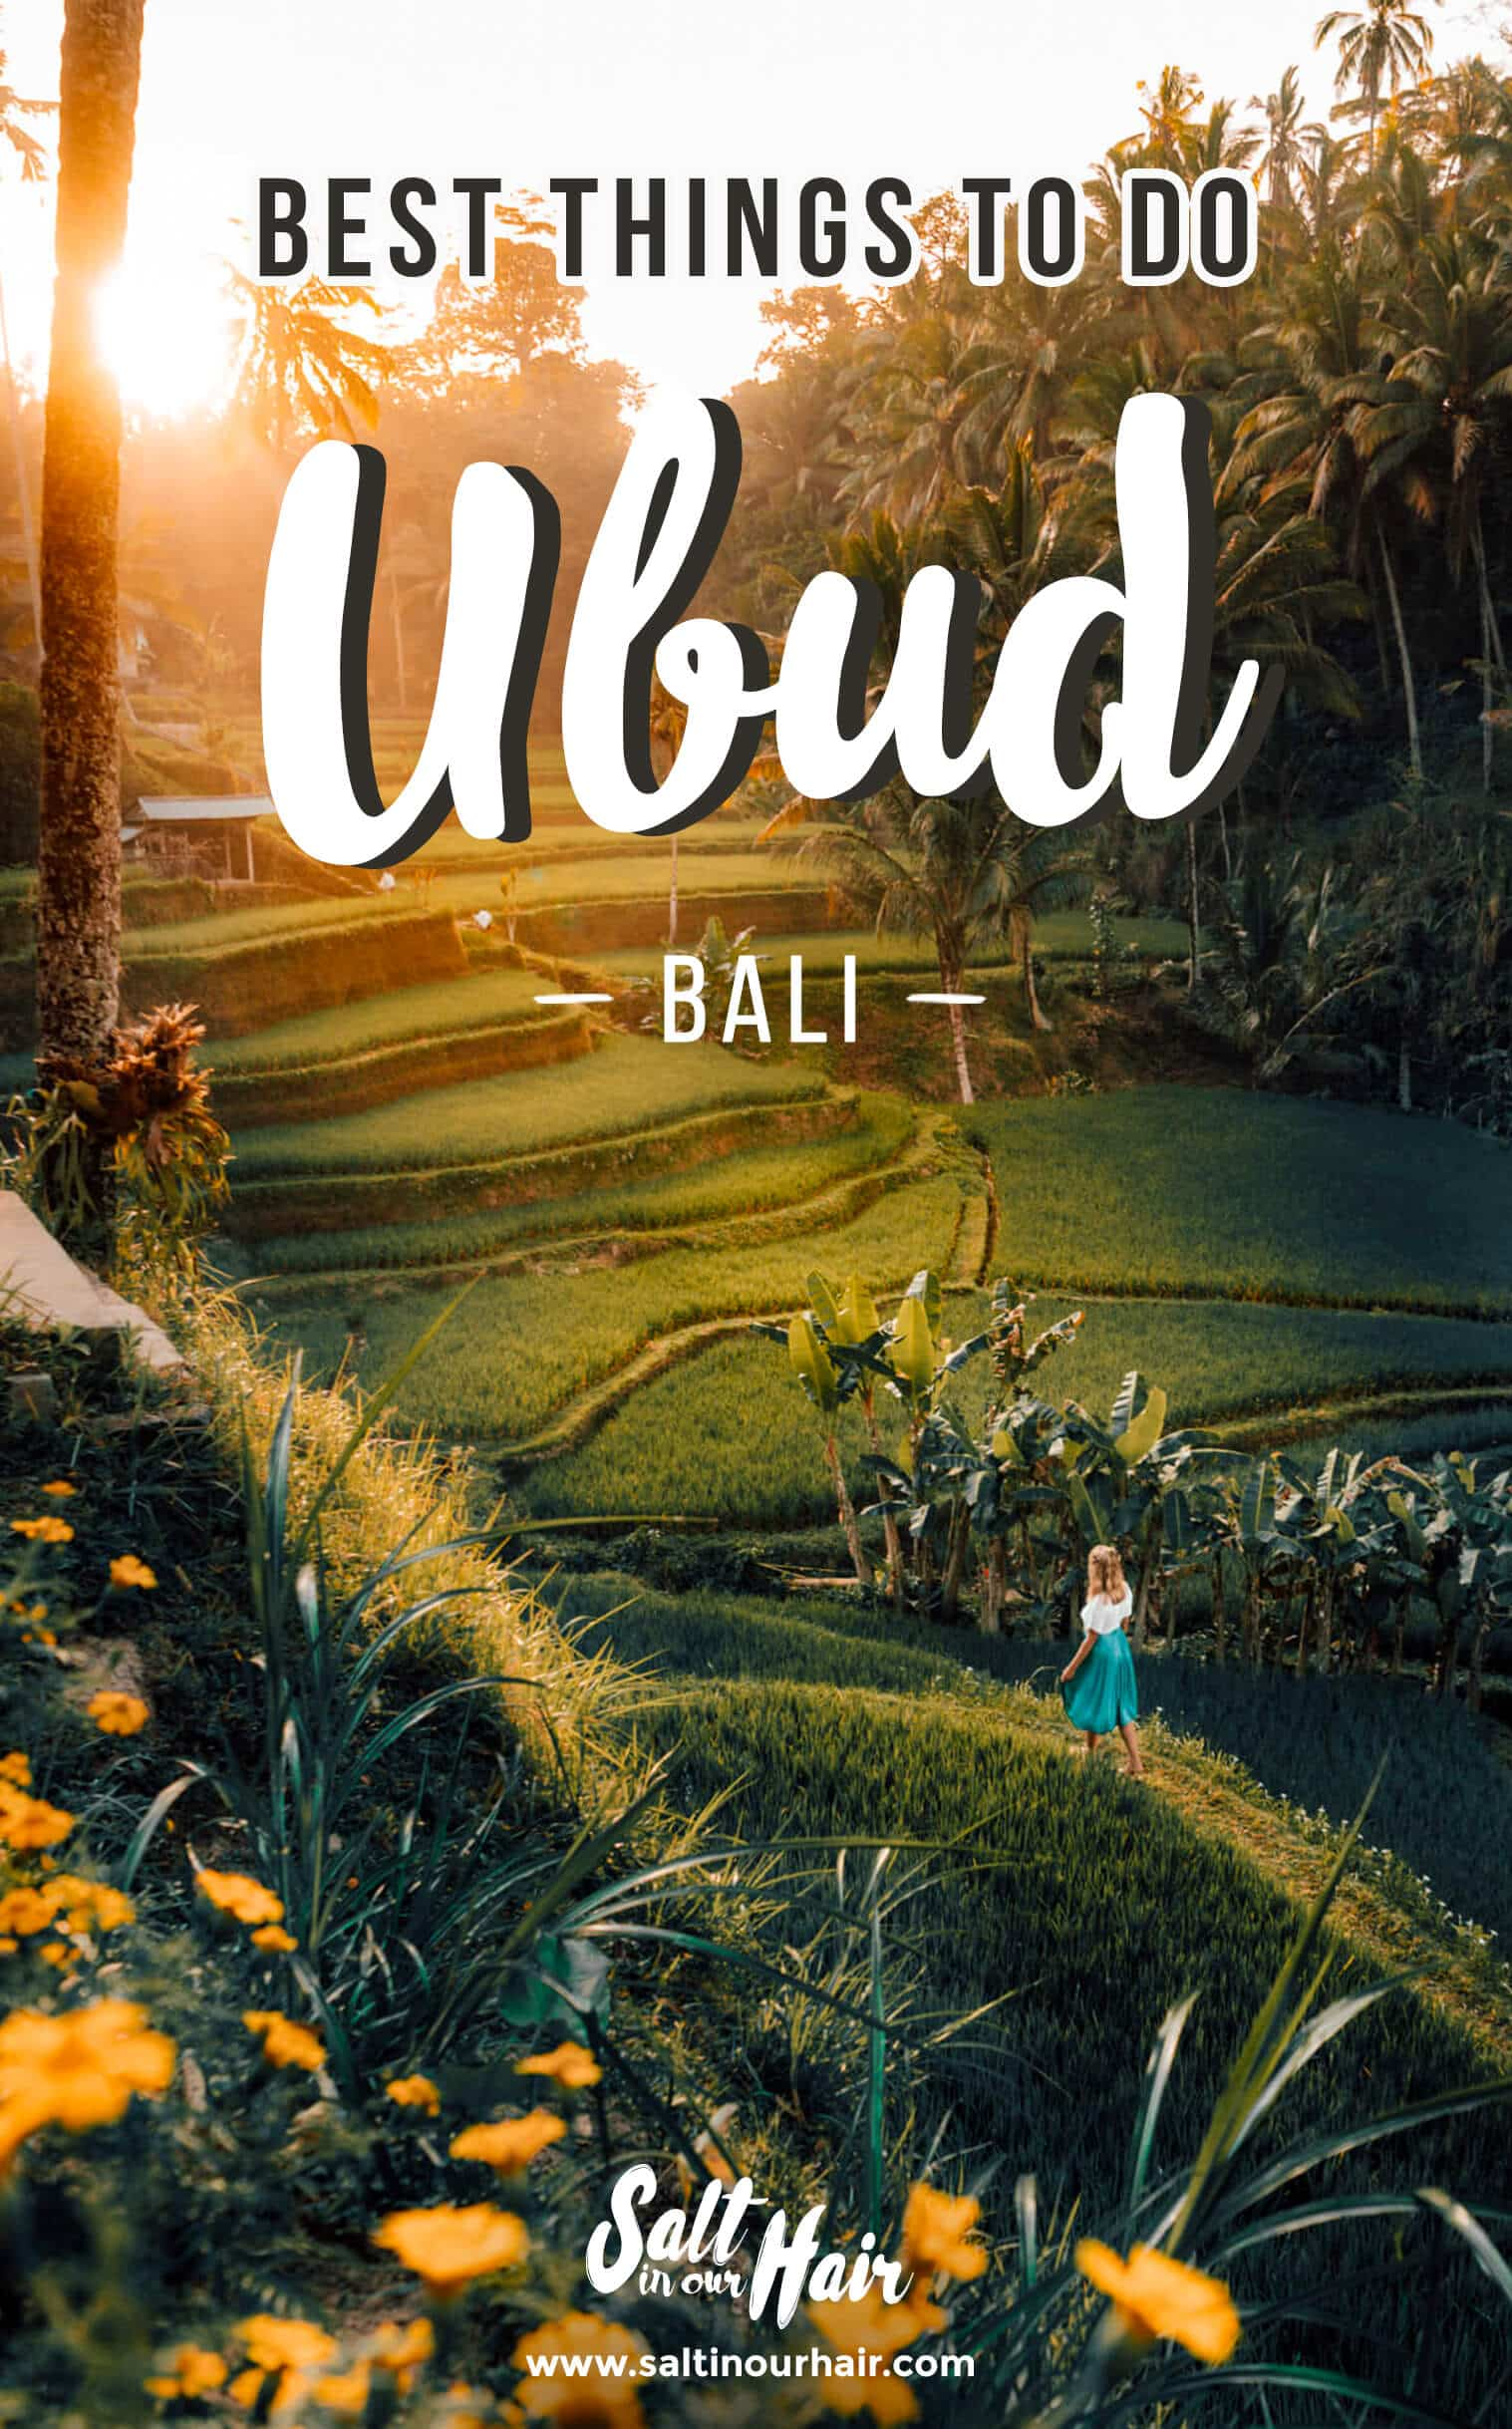 UBUD BALI - 14 x Things To Do in Ubud - Complete 3-Day Guide